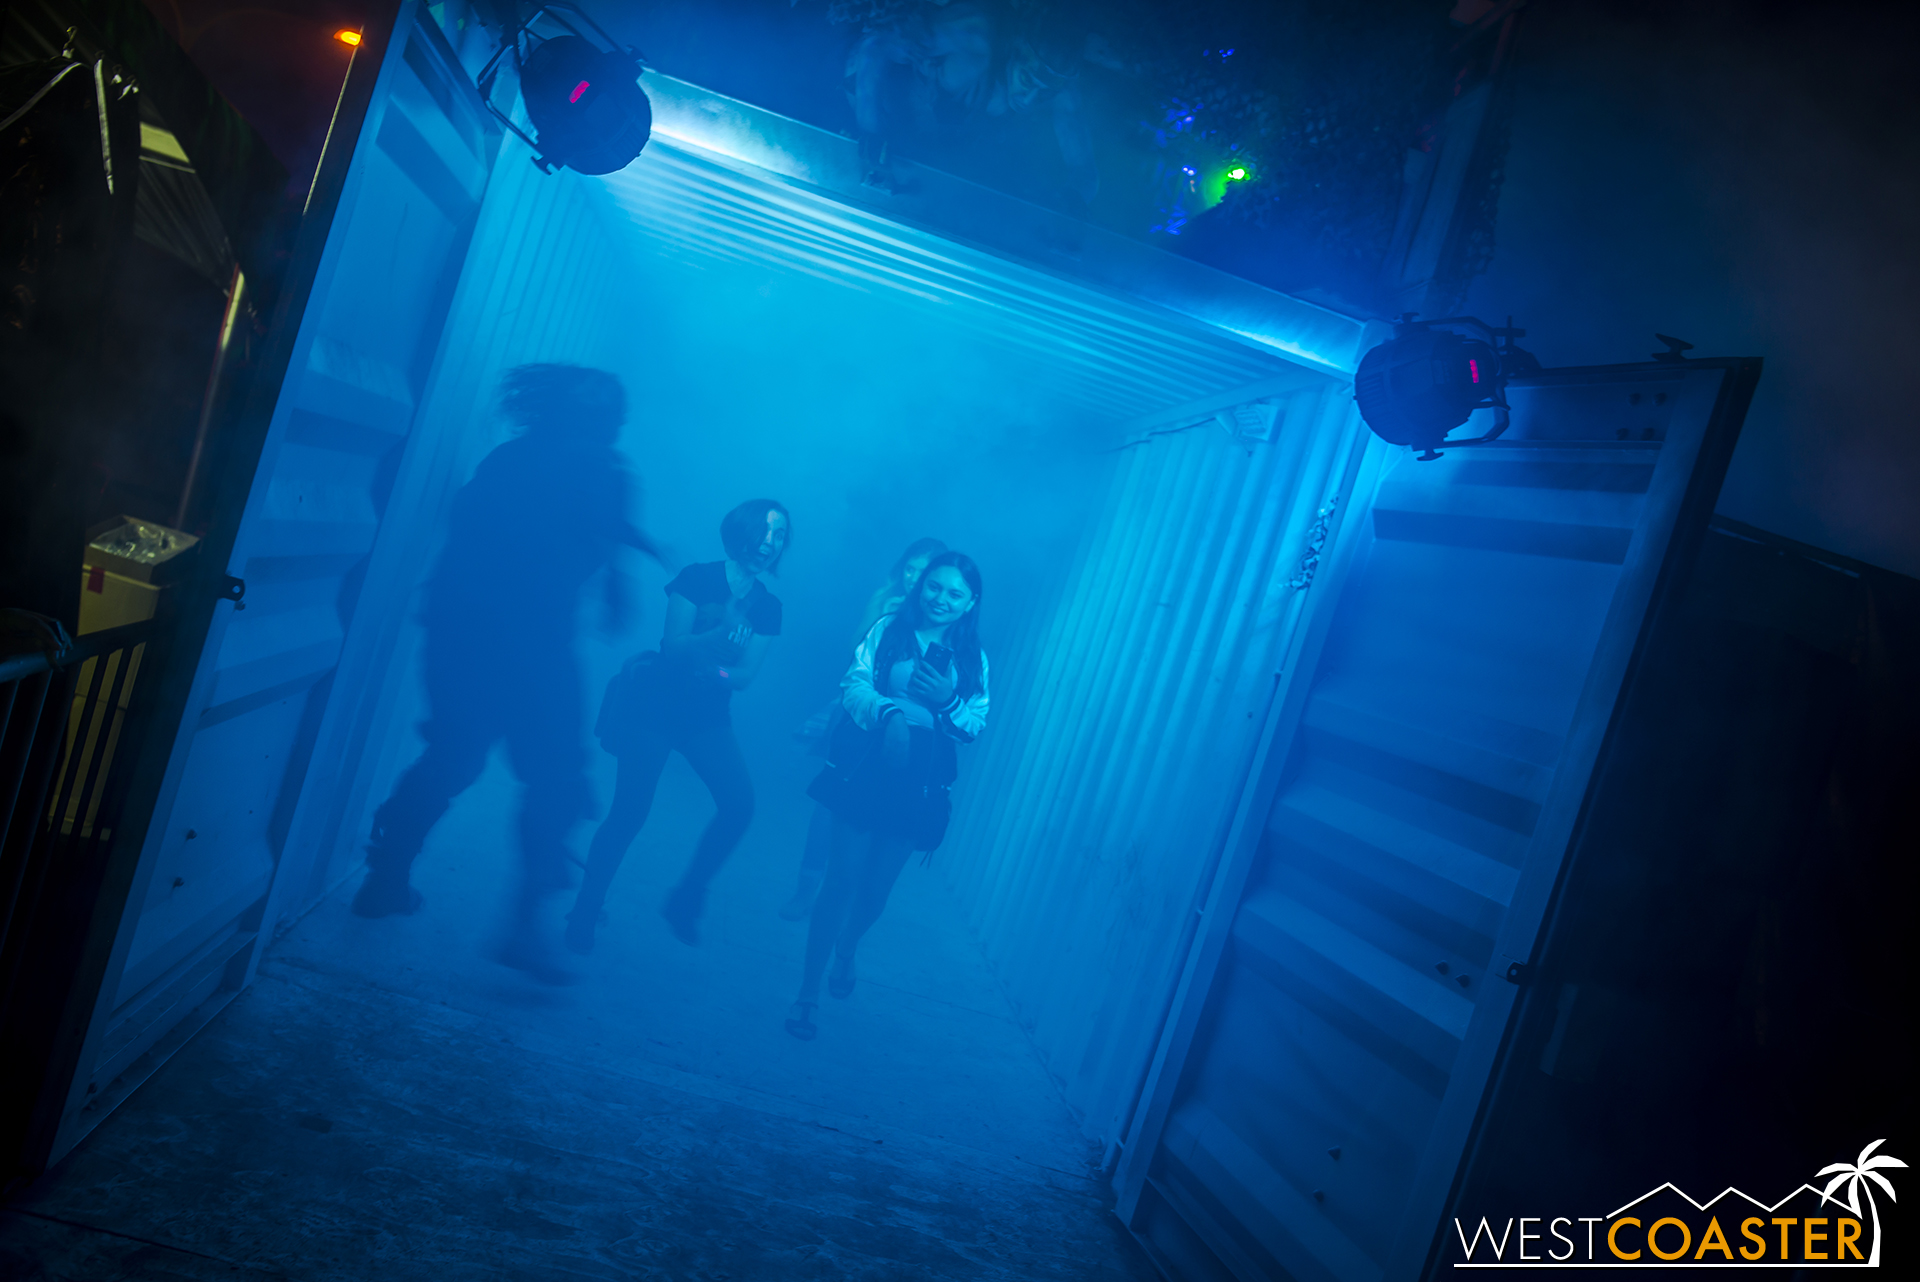 Guests stroll through this fogged out shipping container, blinded by the strobe in their direction.